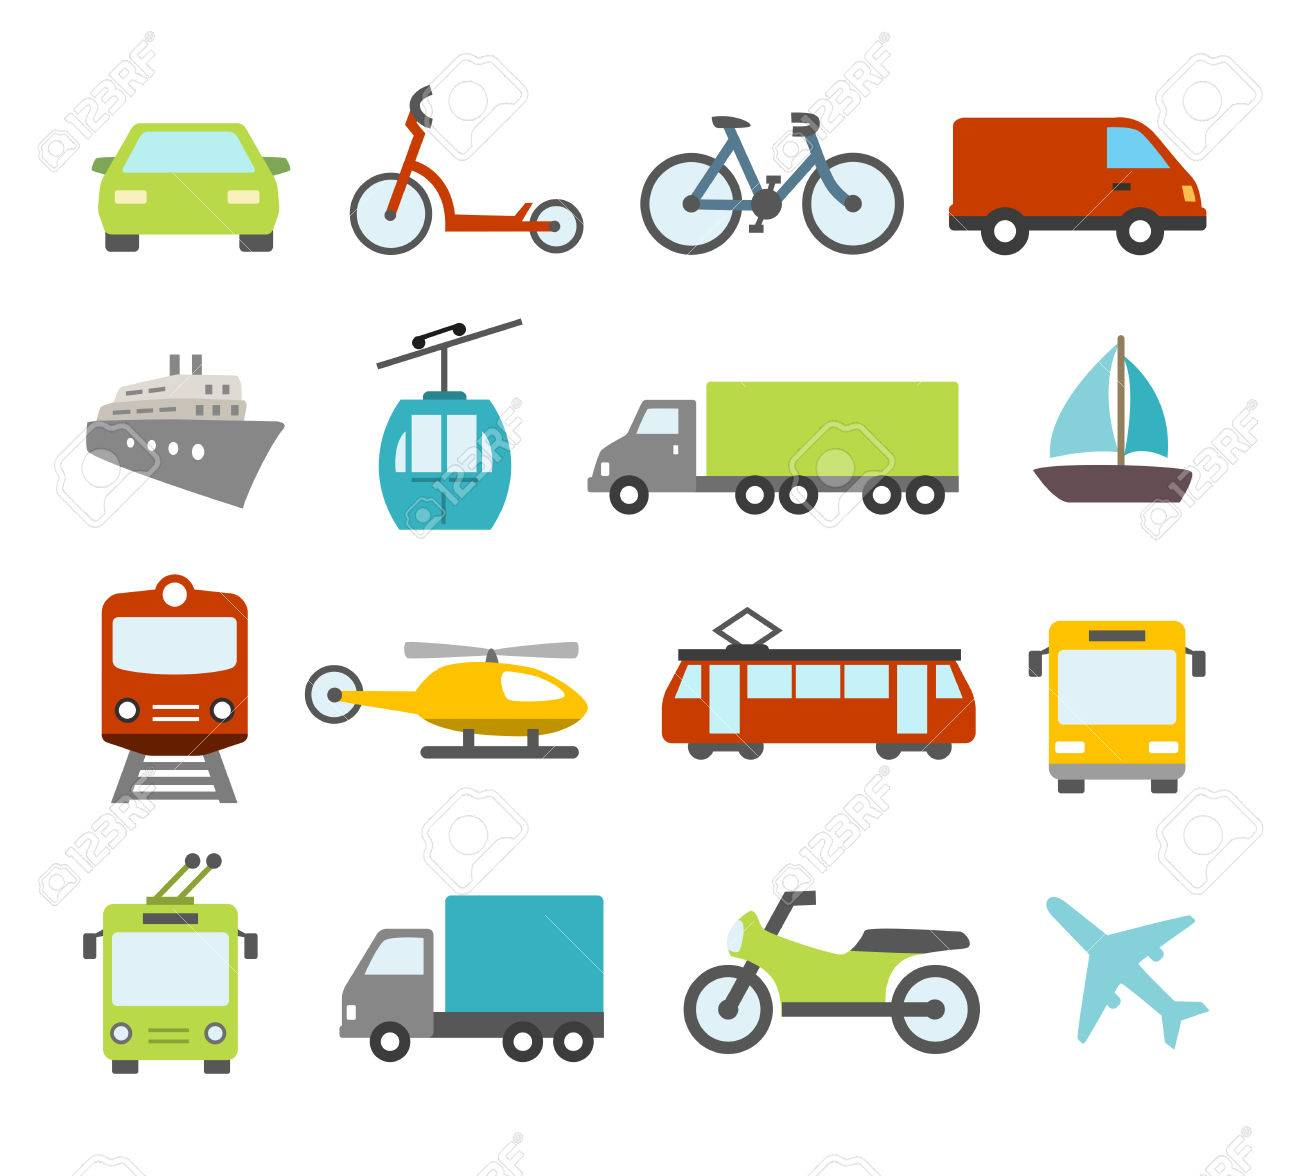 Collection of icons related to trasportation, cars and various vehicles - 50454822